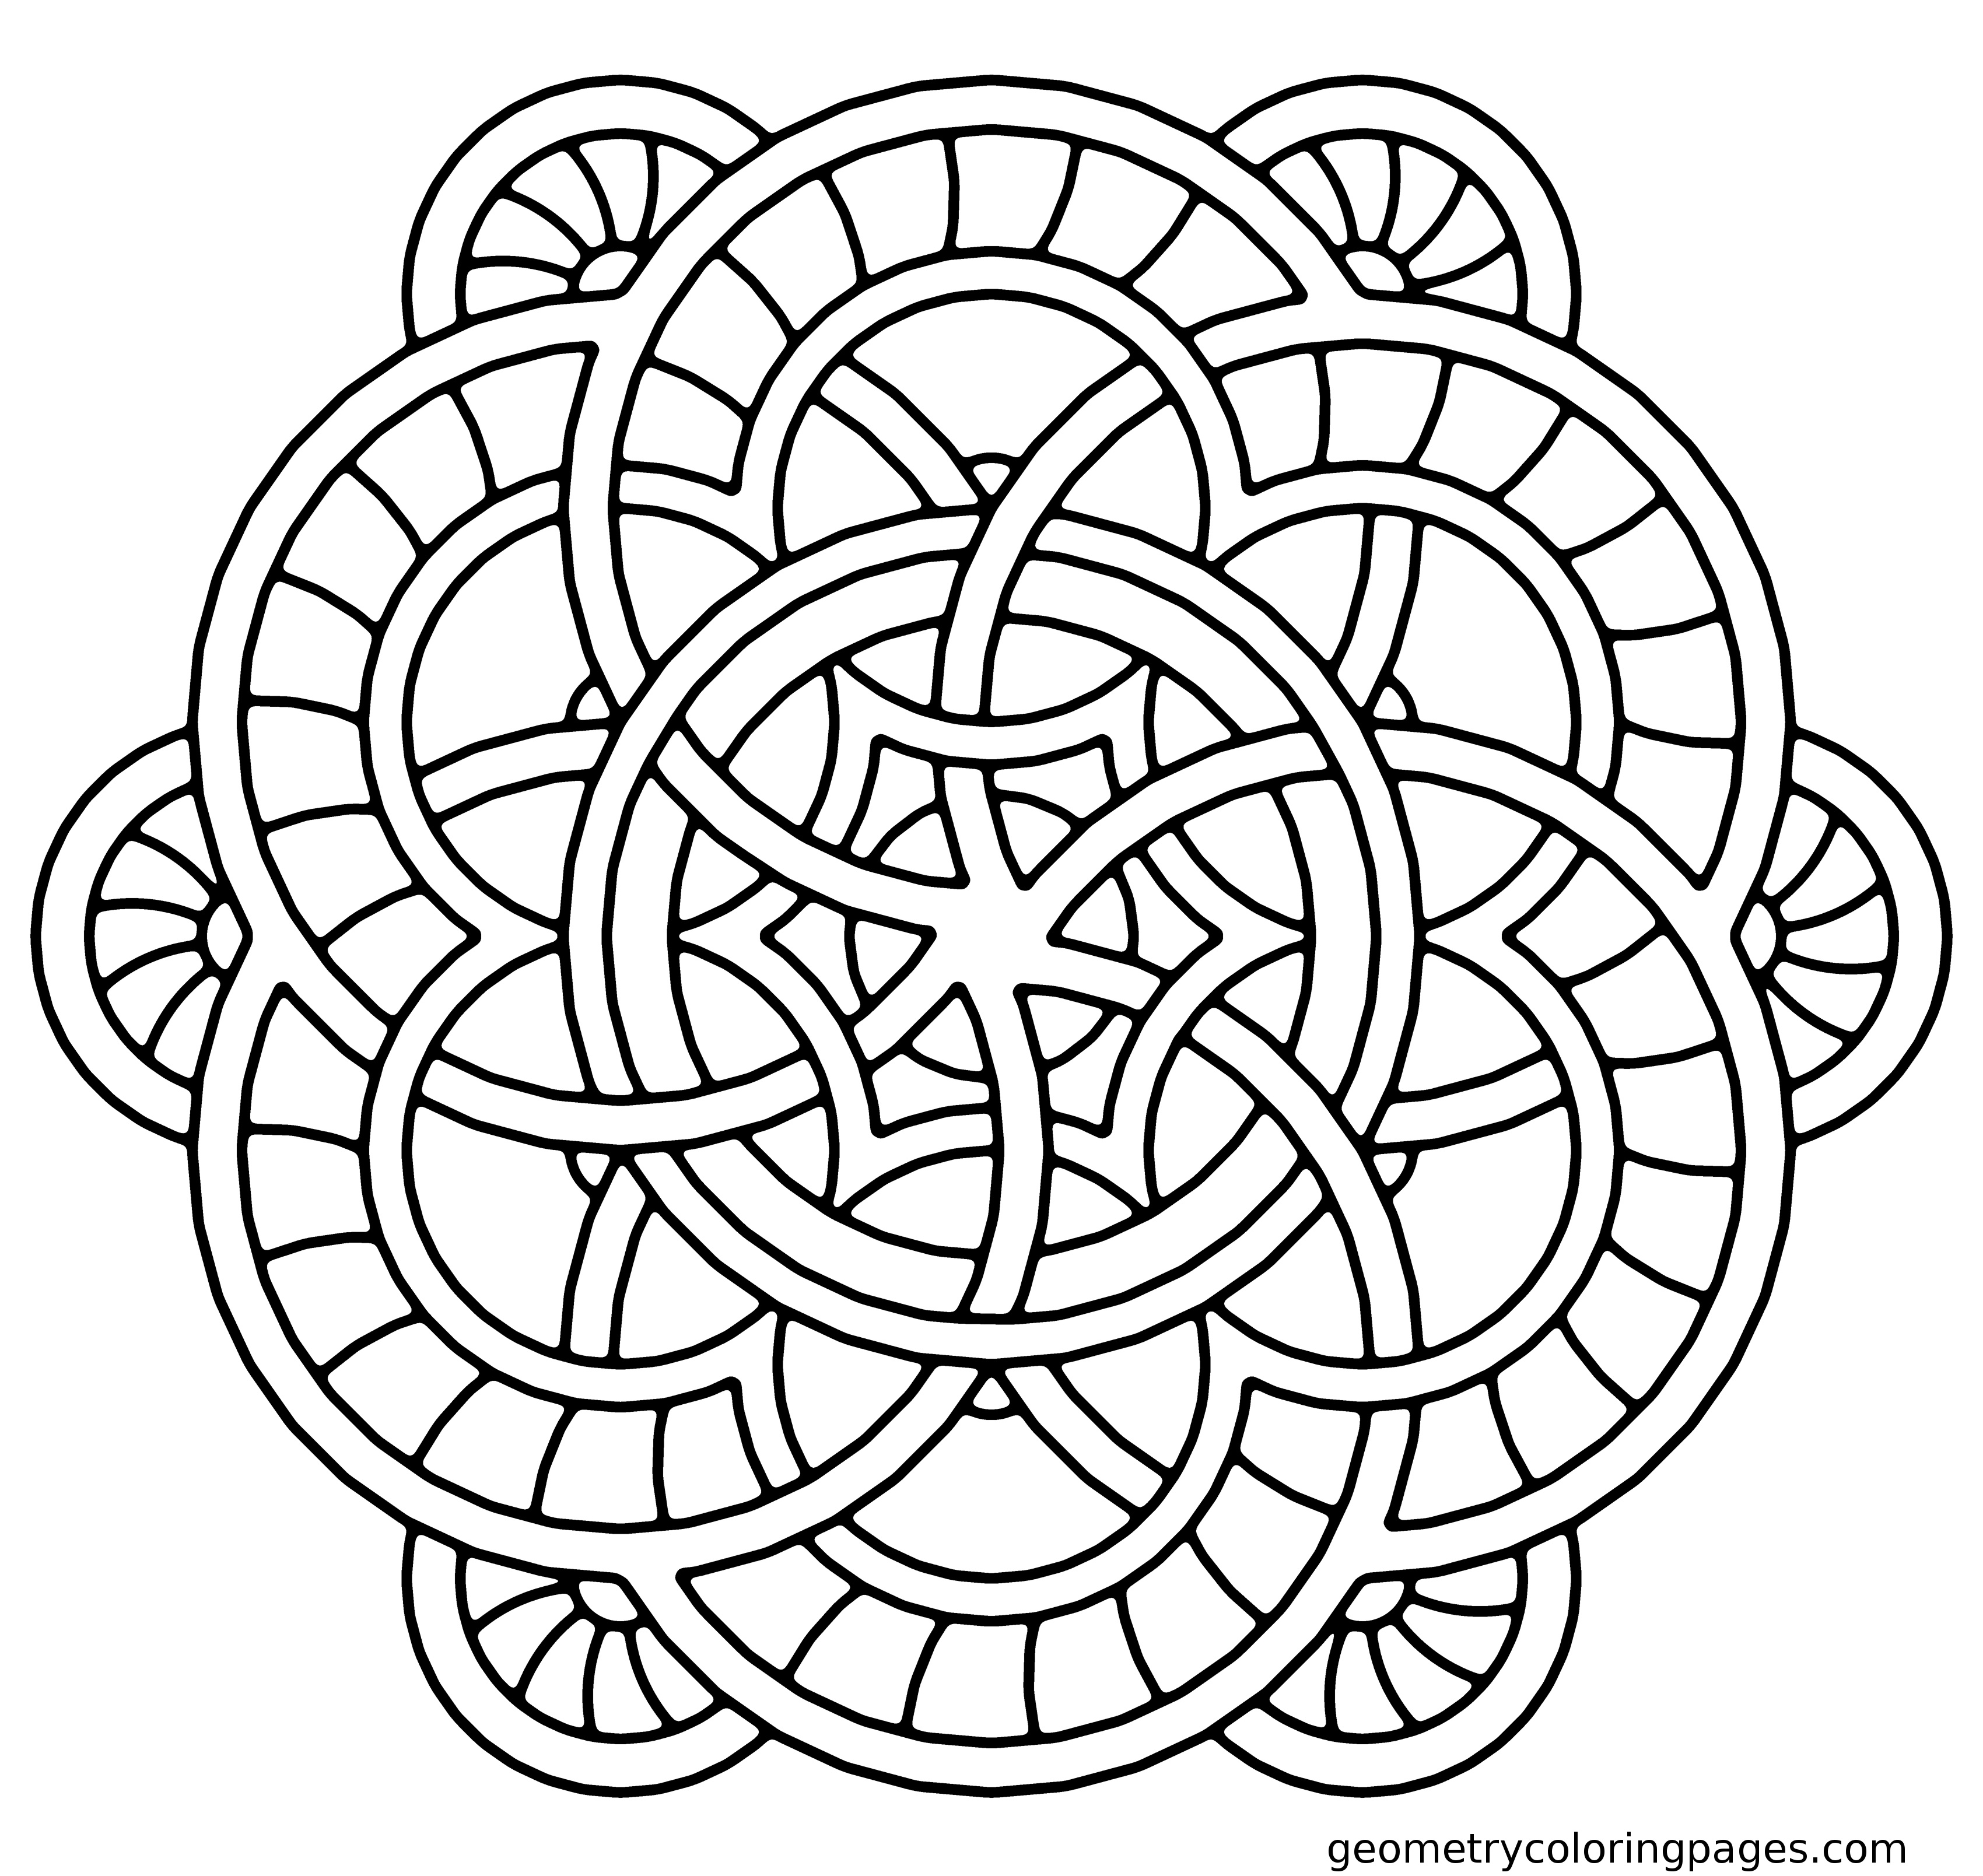 Simple Mandala Coloring Pages Printable